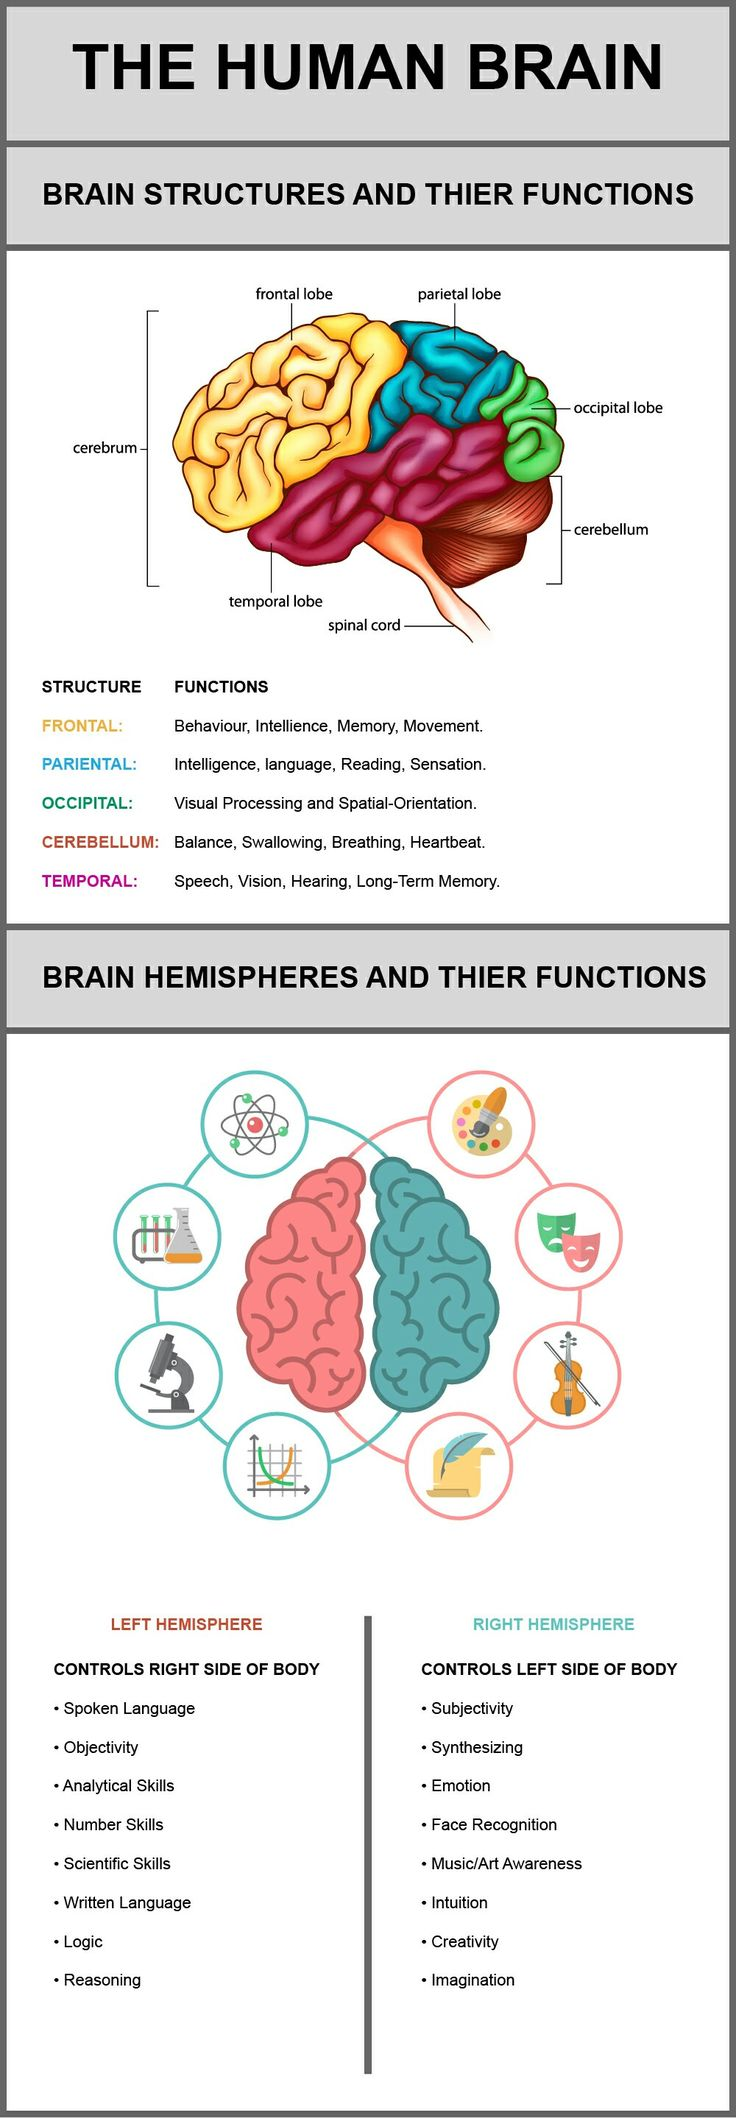 The human brain is one of the most well-kept secrets of science. Brain health is key to well-being and feeling balanced. Learn more: BasilHealth at www.basilhealth.com